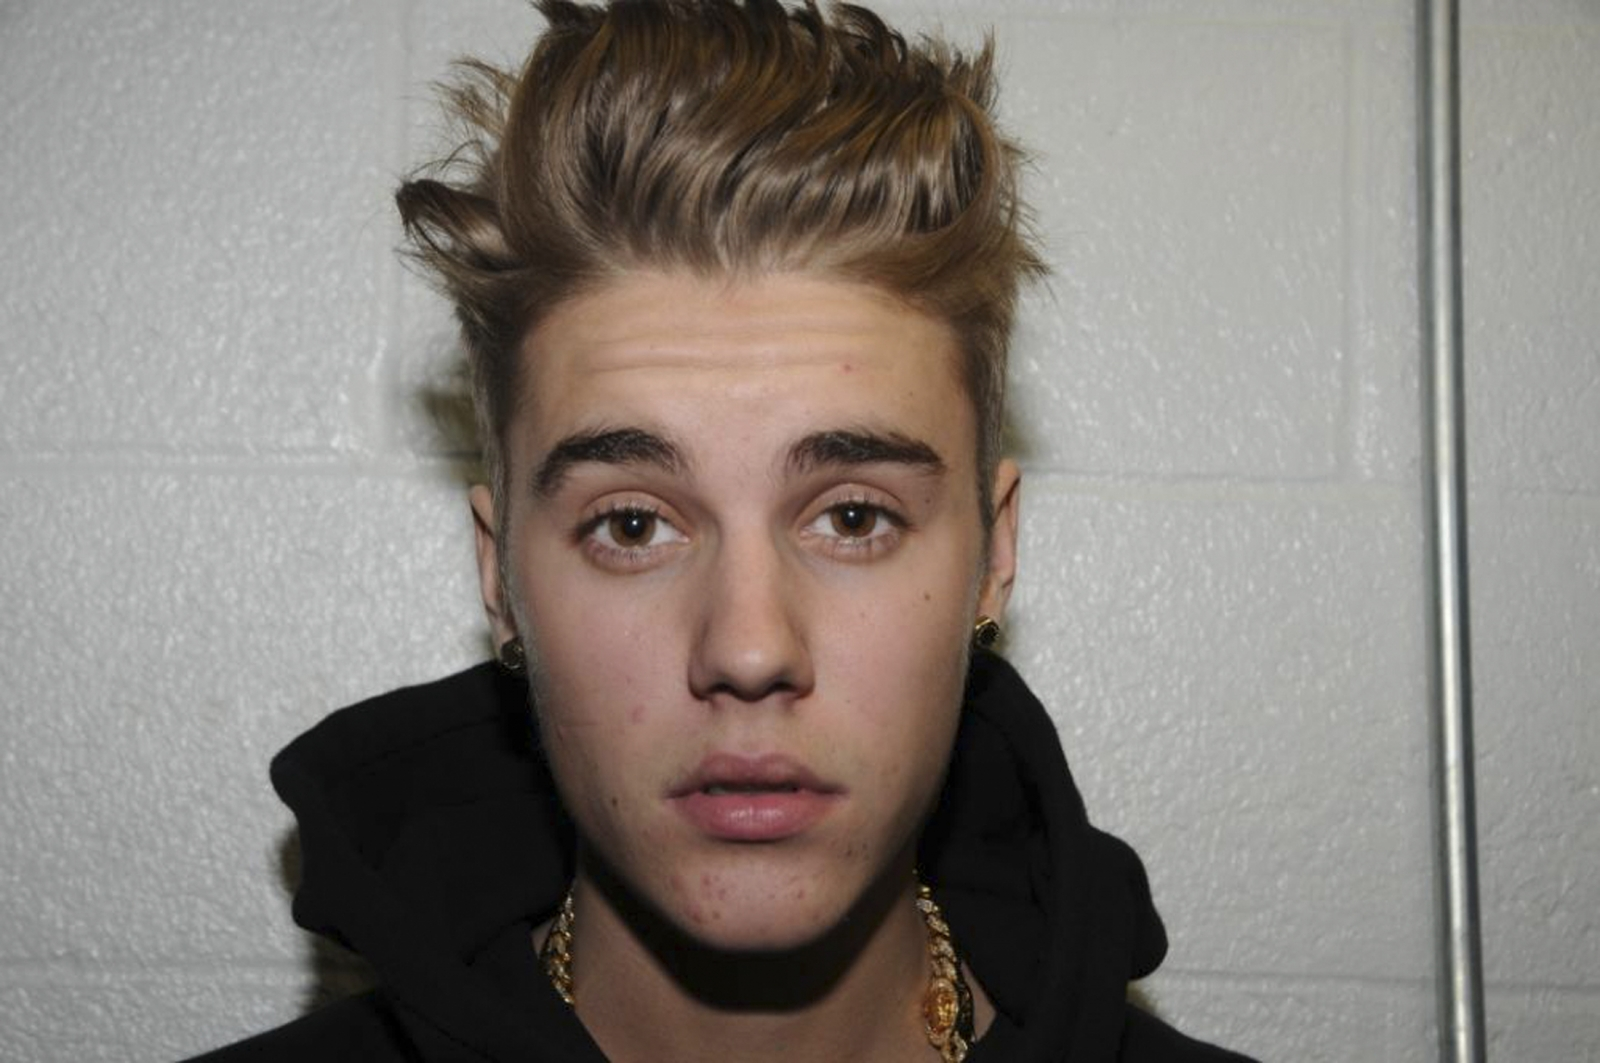 Canadian pop singer Justin Bieber is pictured in police custody in Miami Beach, Florida